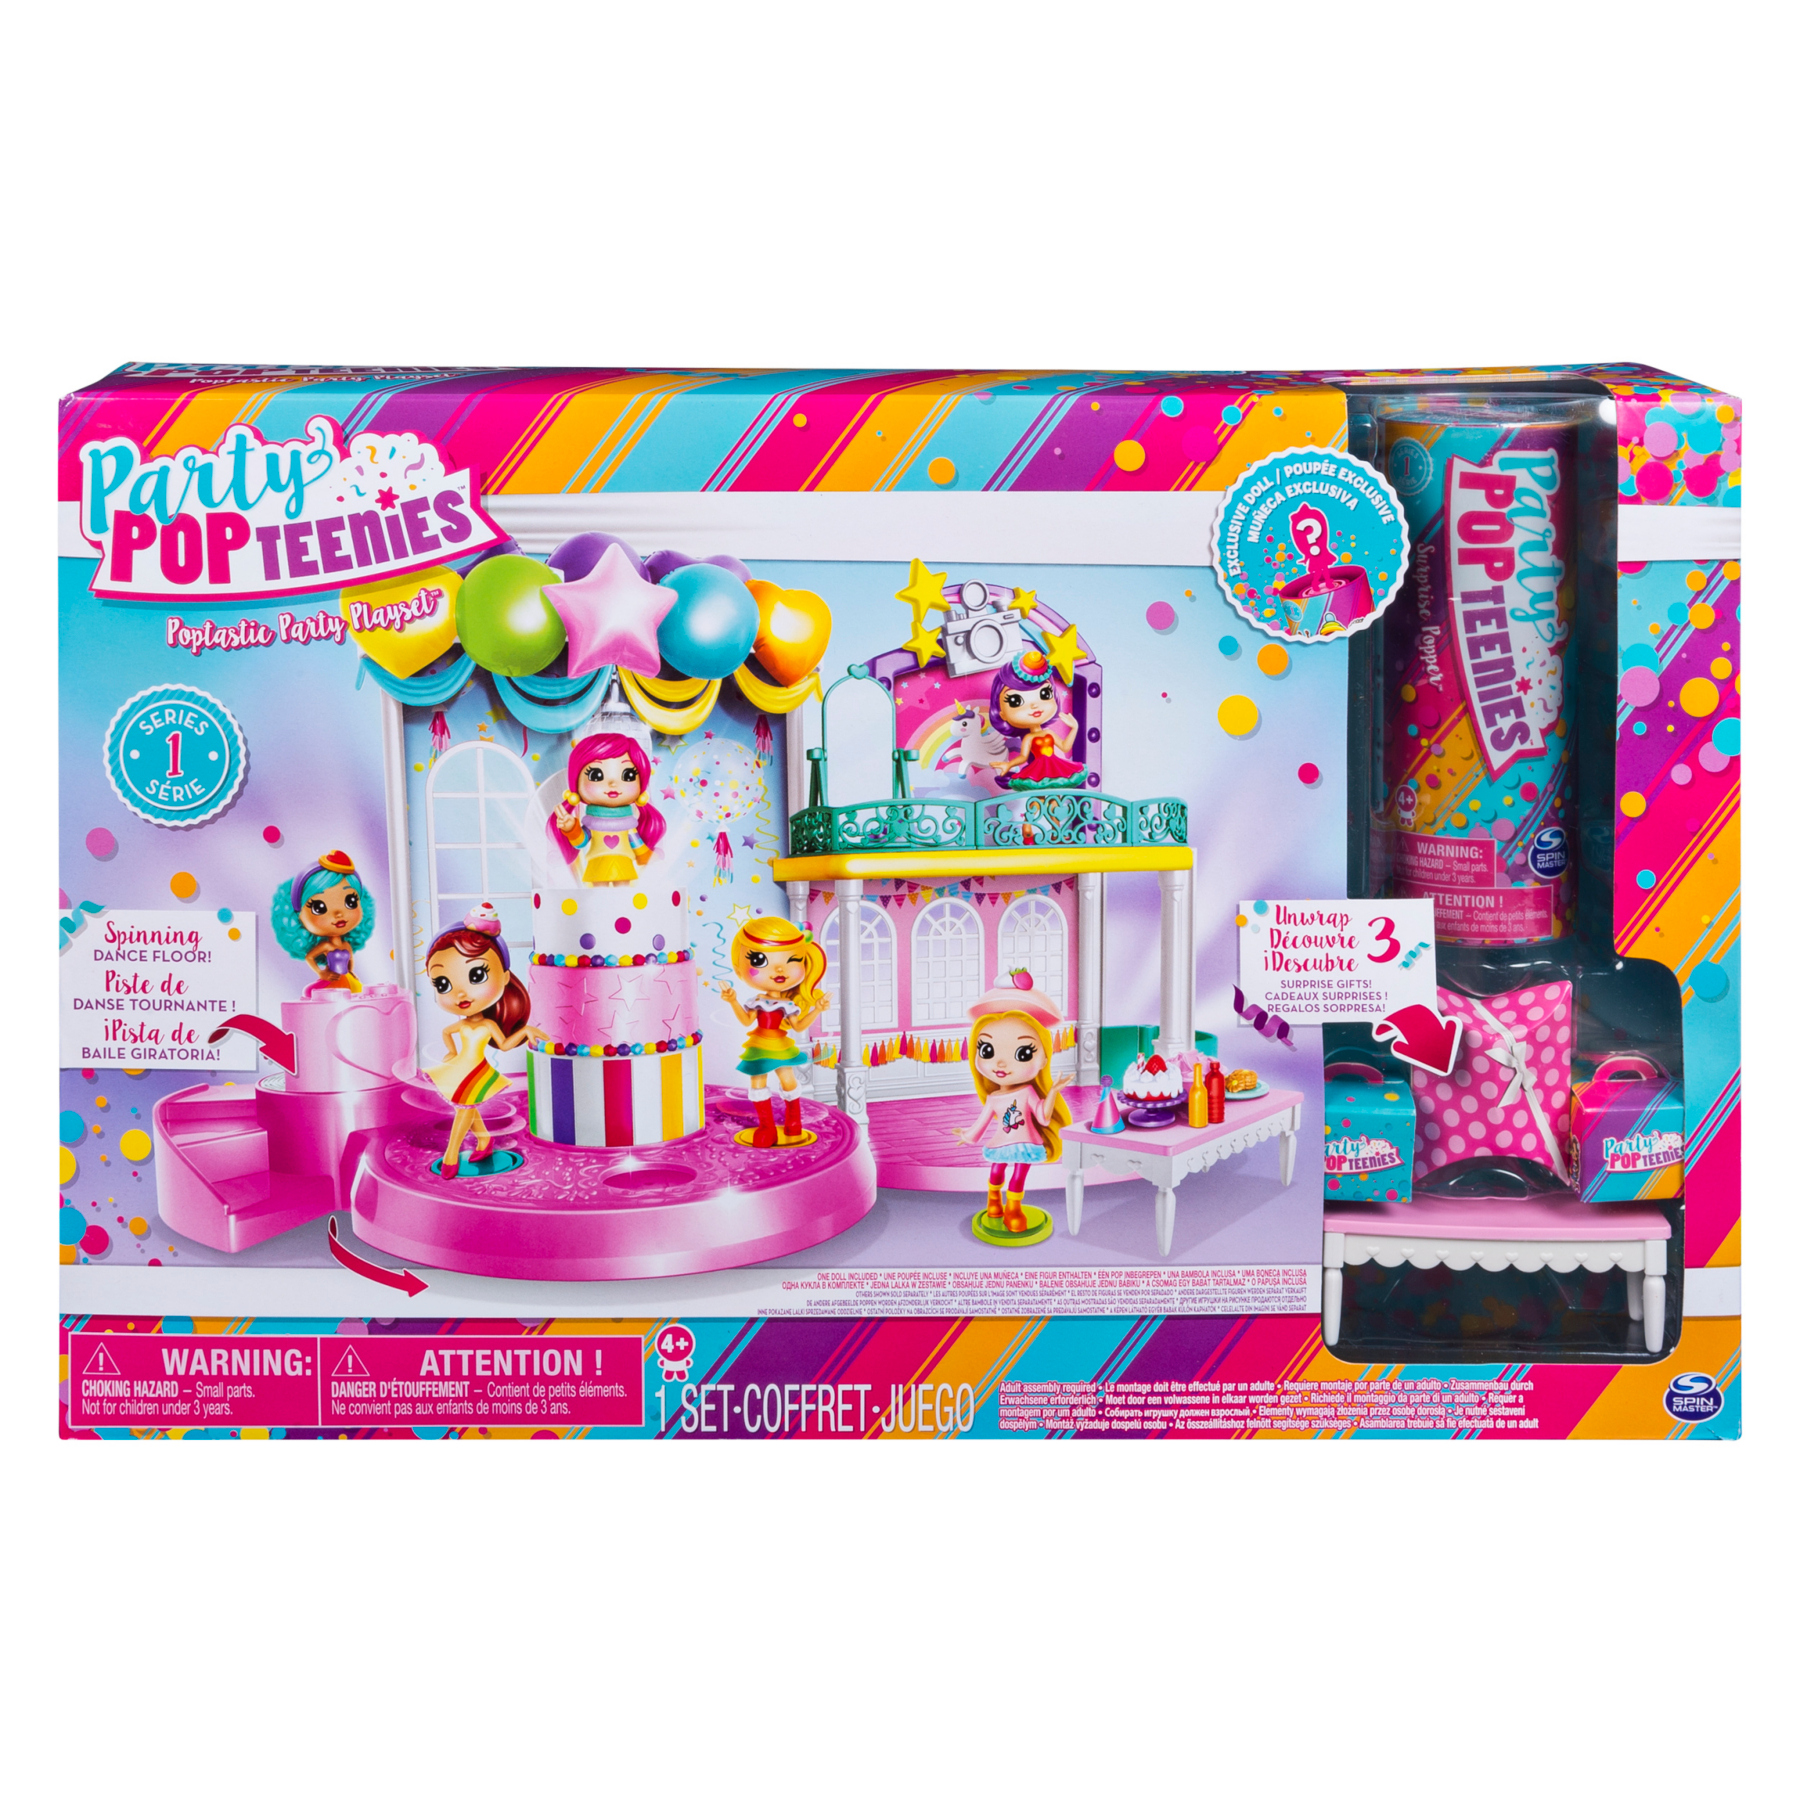 Party Popteenies Poptastic Party Playset with Confetti Exclusive